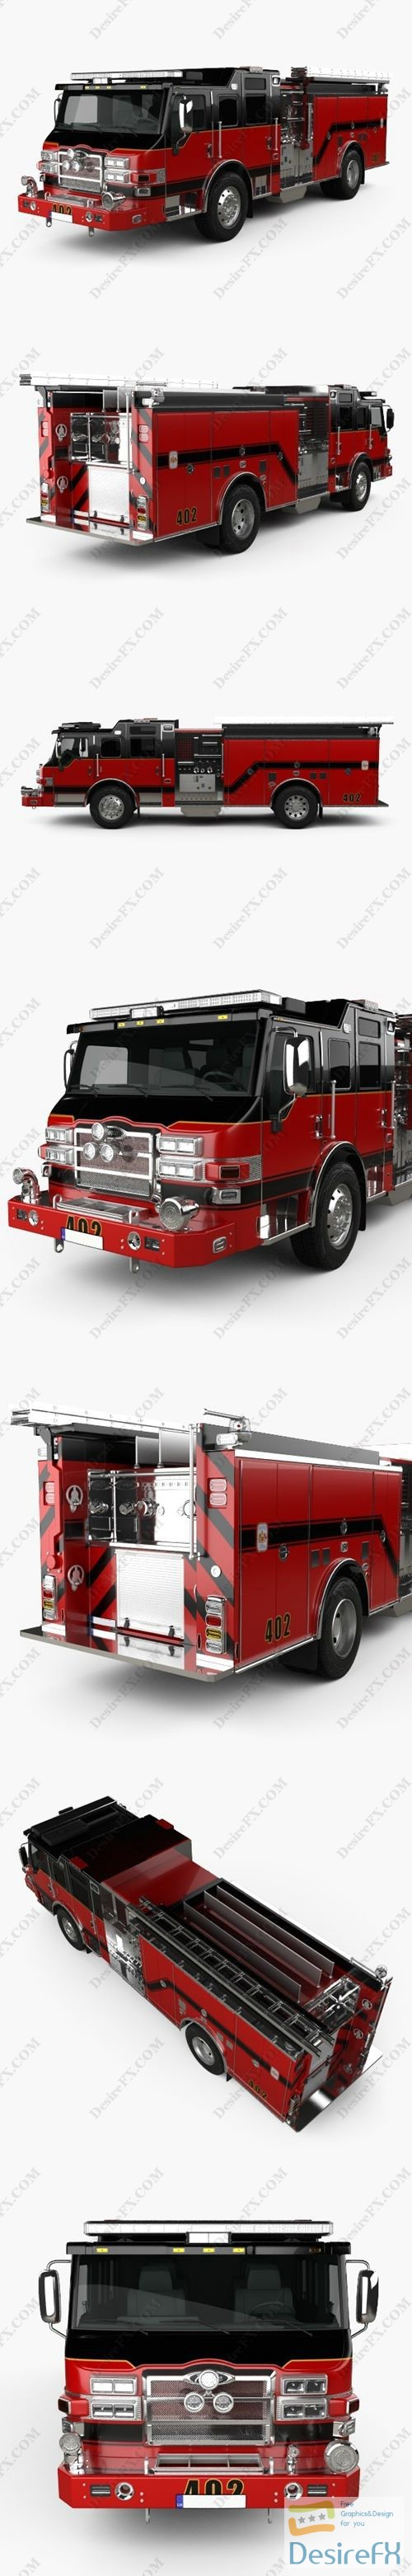 3d-models - Pierce E402 Pumper Fire Truck 2014 3D Model